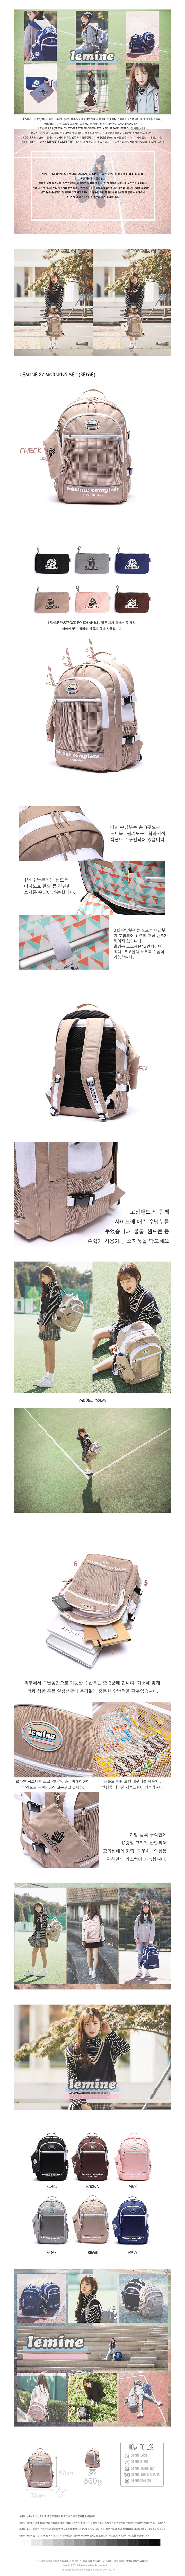 모닝세트베이지LE27BEIGE_MORNINGSET850.jpg